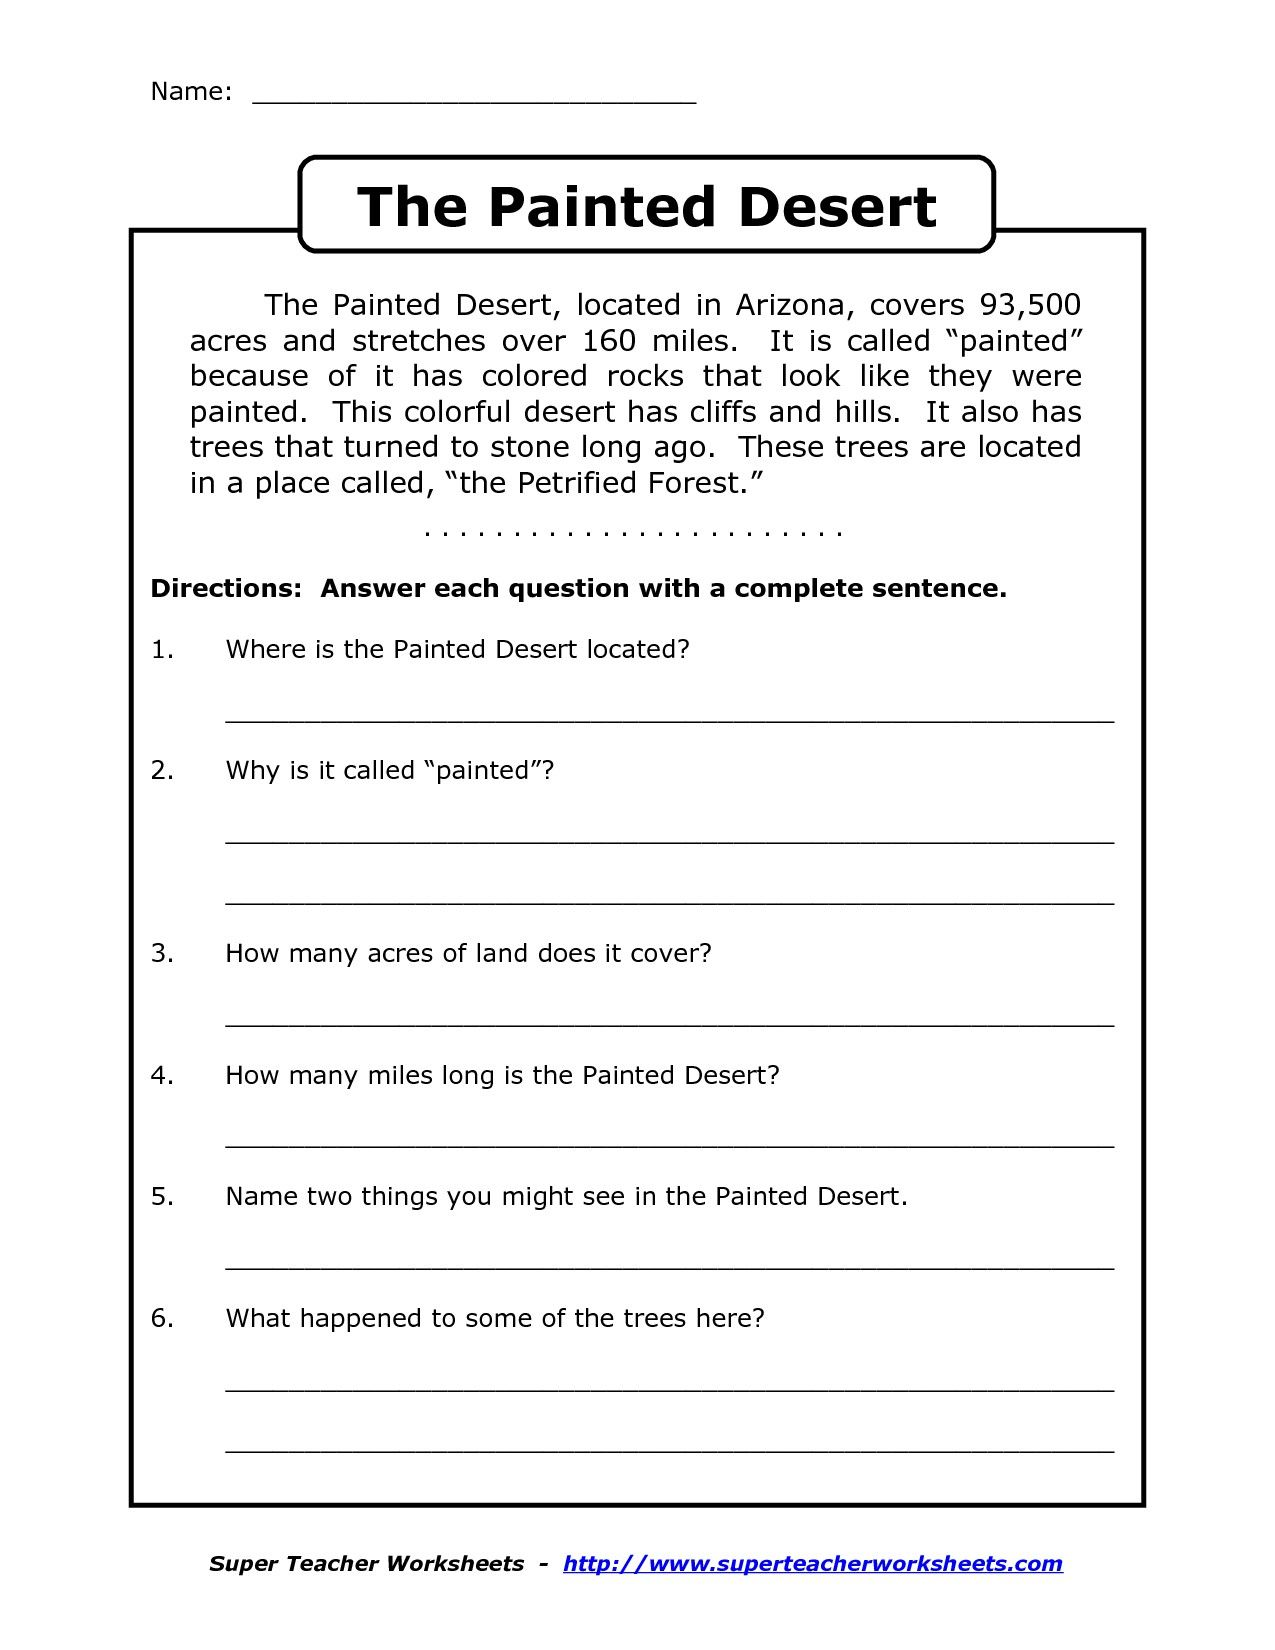 Reading Comprehension Worksheets Grade 4